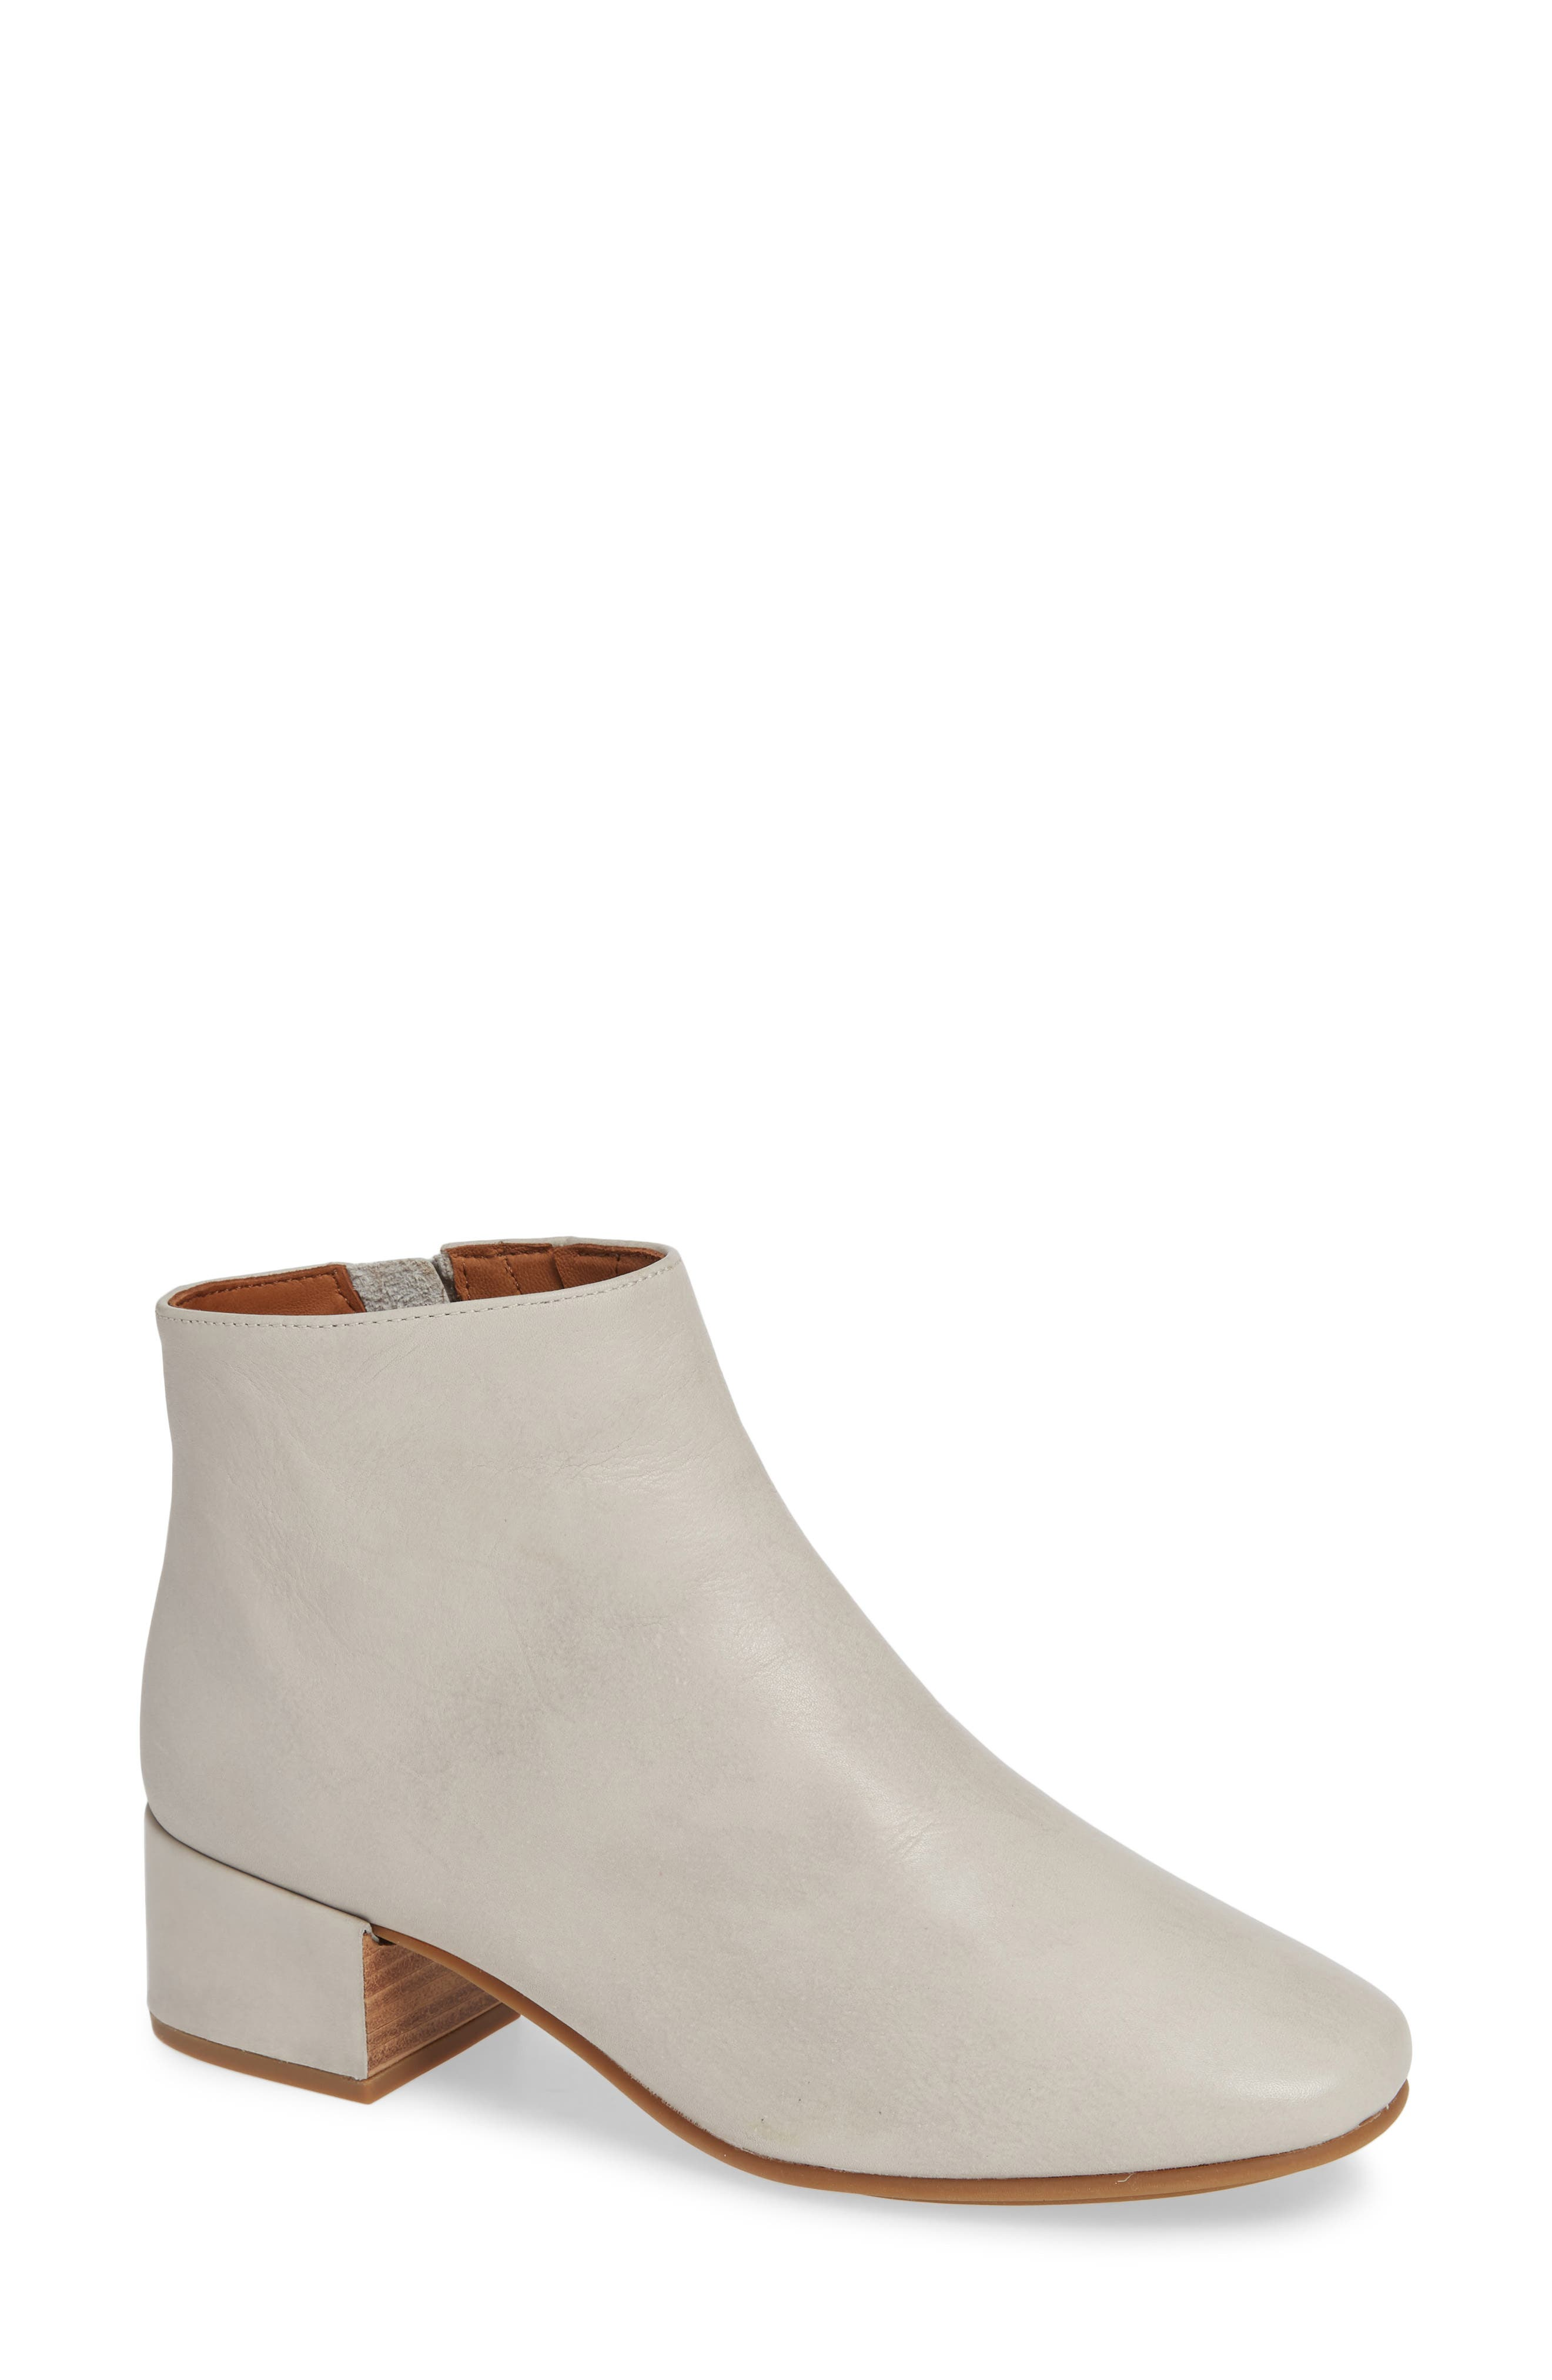 GENTLE SOULS BY KENNETH COLE Ella Bootie, Main, color, LIGHT GREY LEATHER